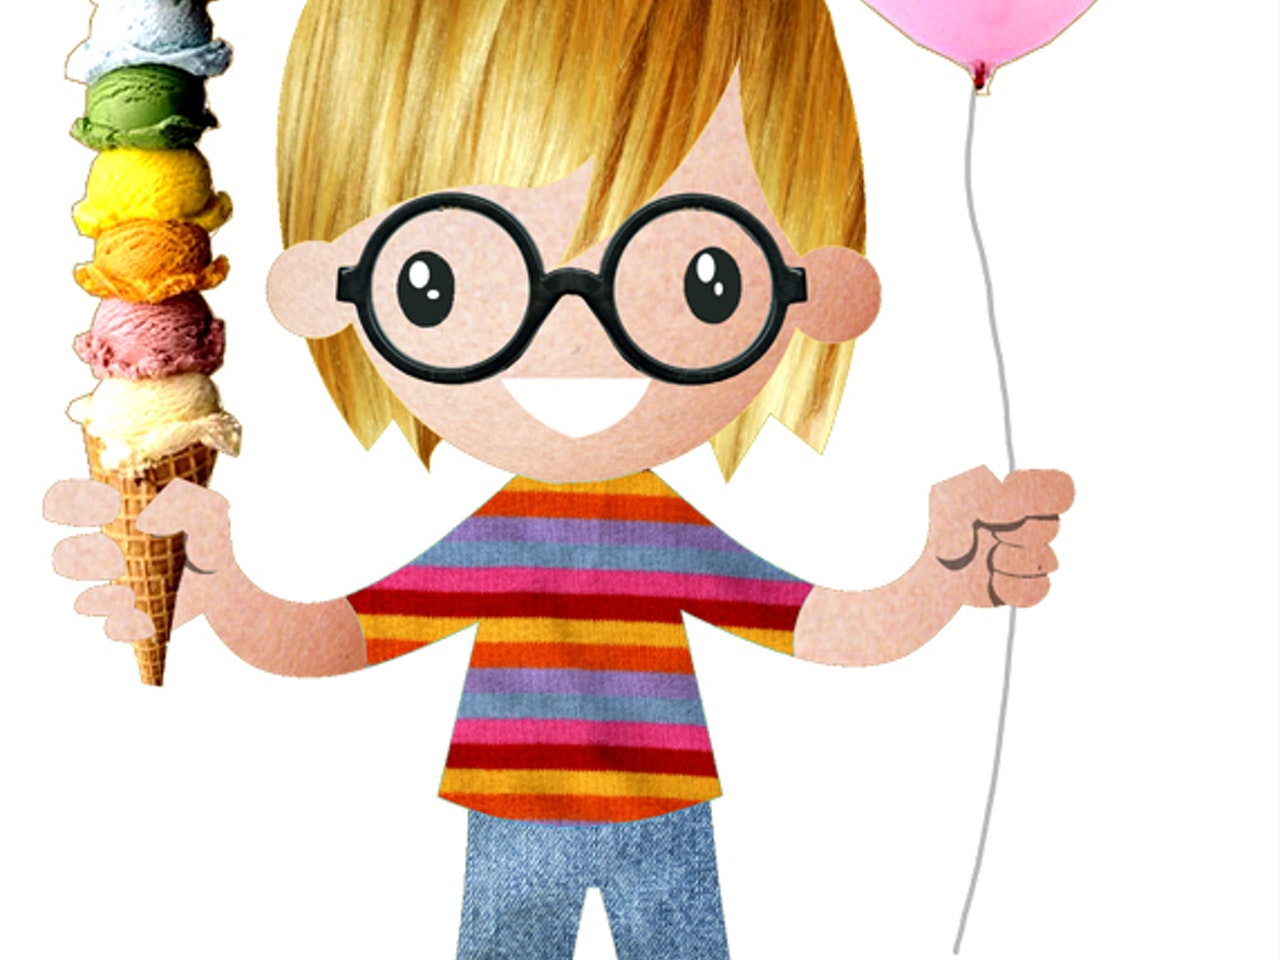 young boy glasses collage funny happy humorous comical colourful graphic illustration